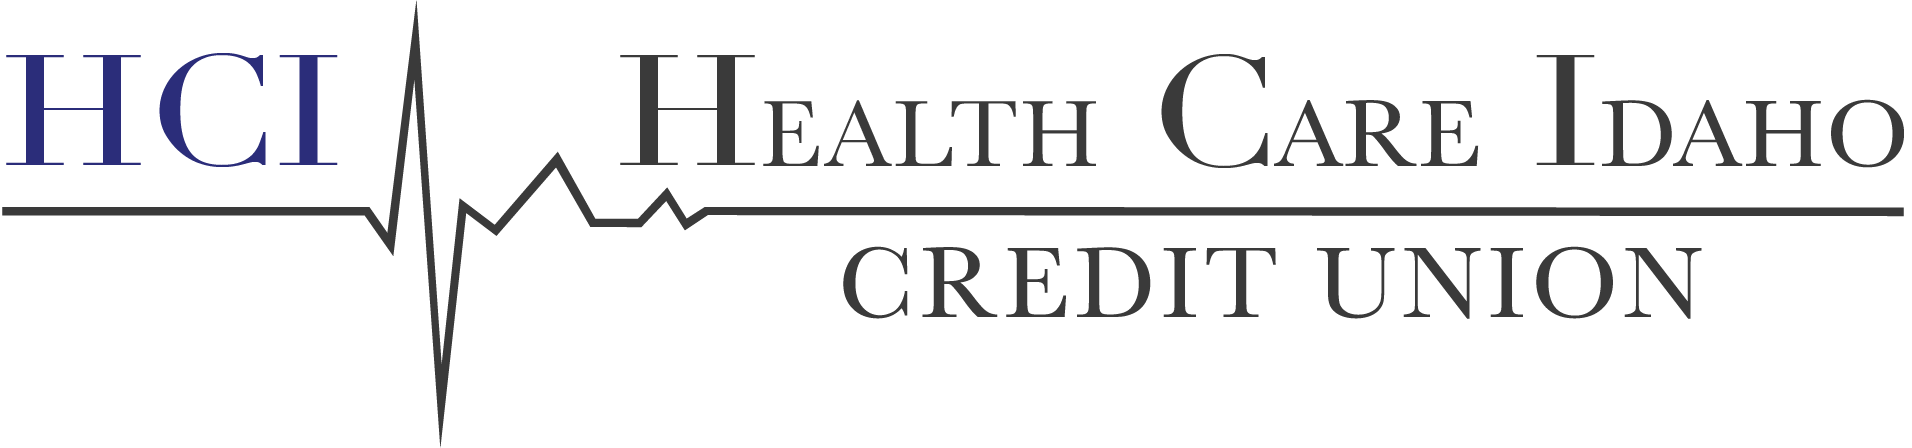 Health Care Idaho Credit Union Logo